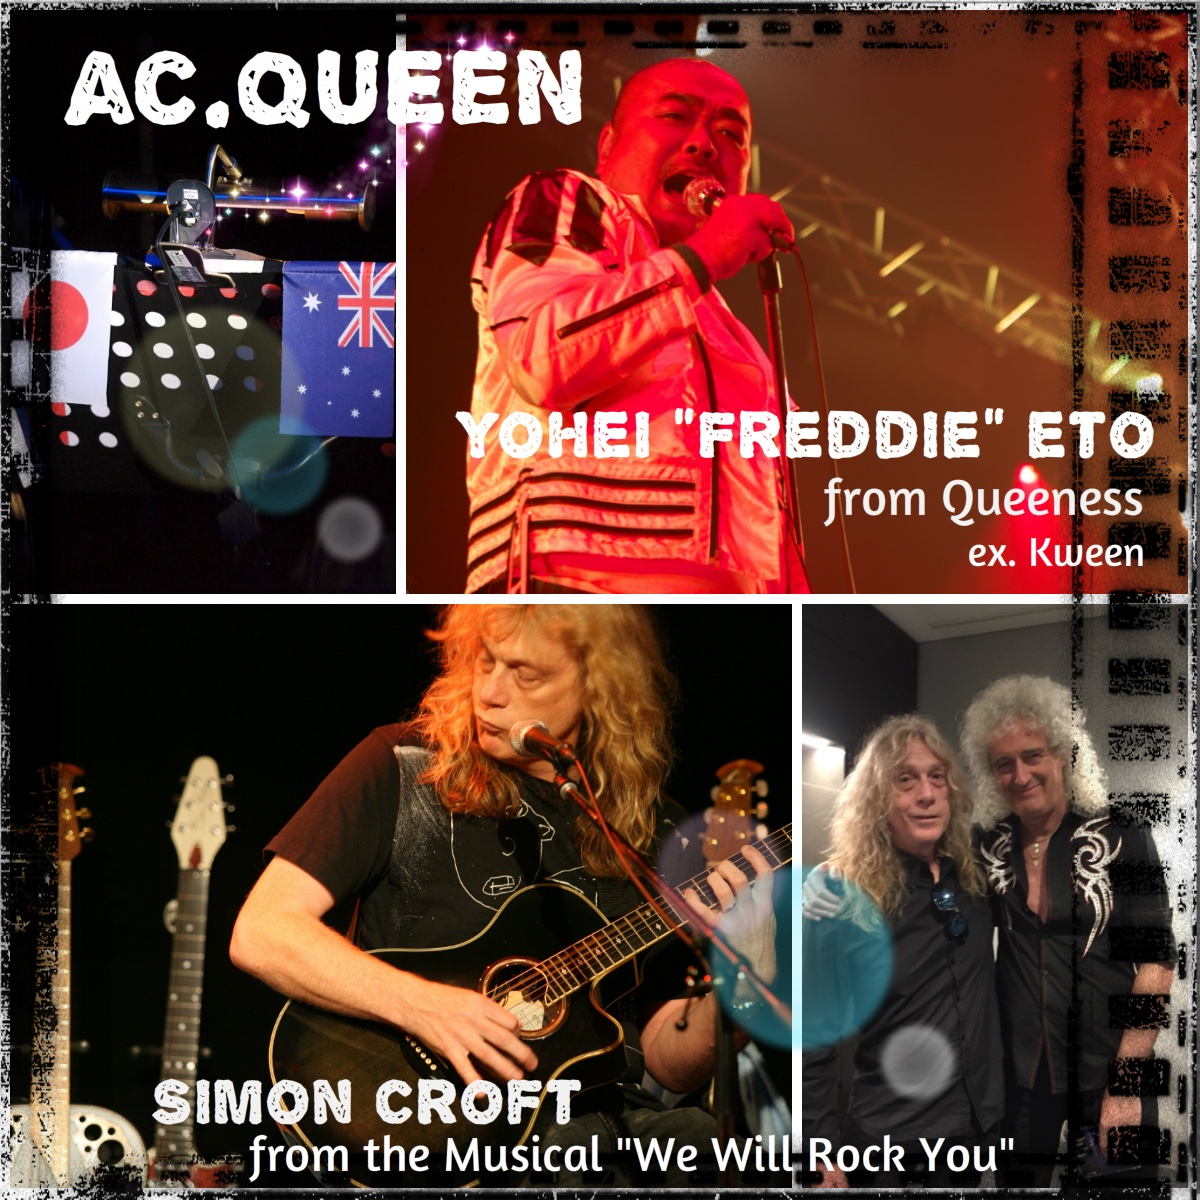 AC. QUEEN Live at まほろ座